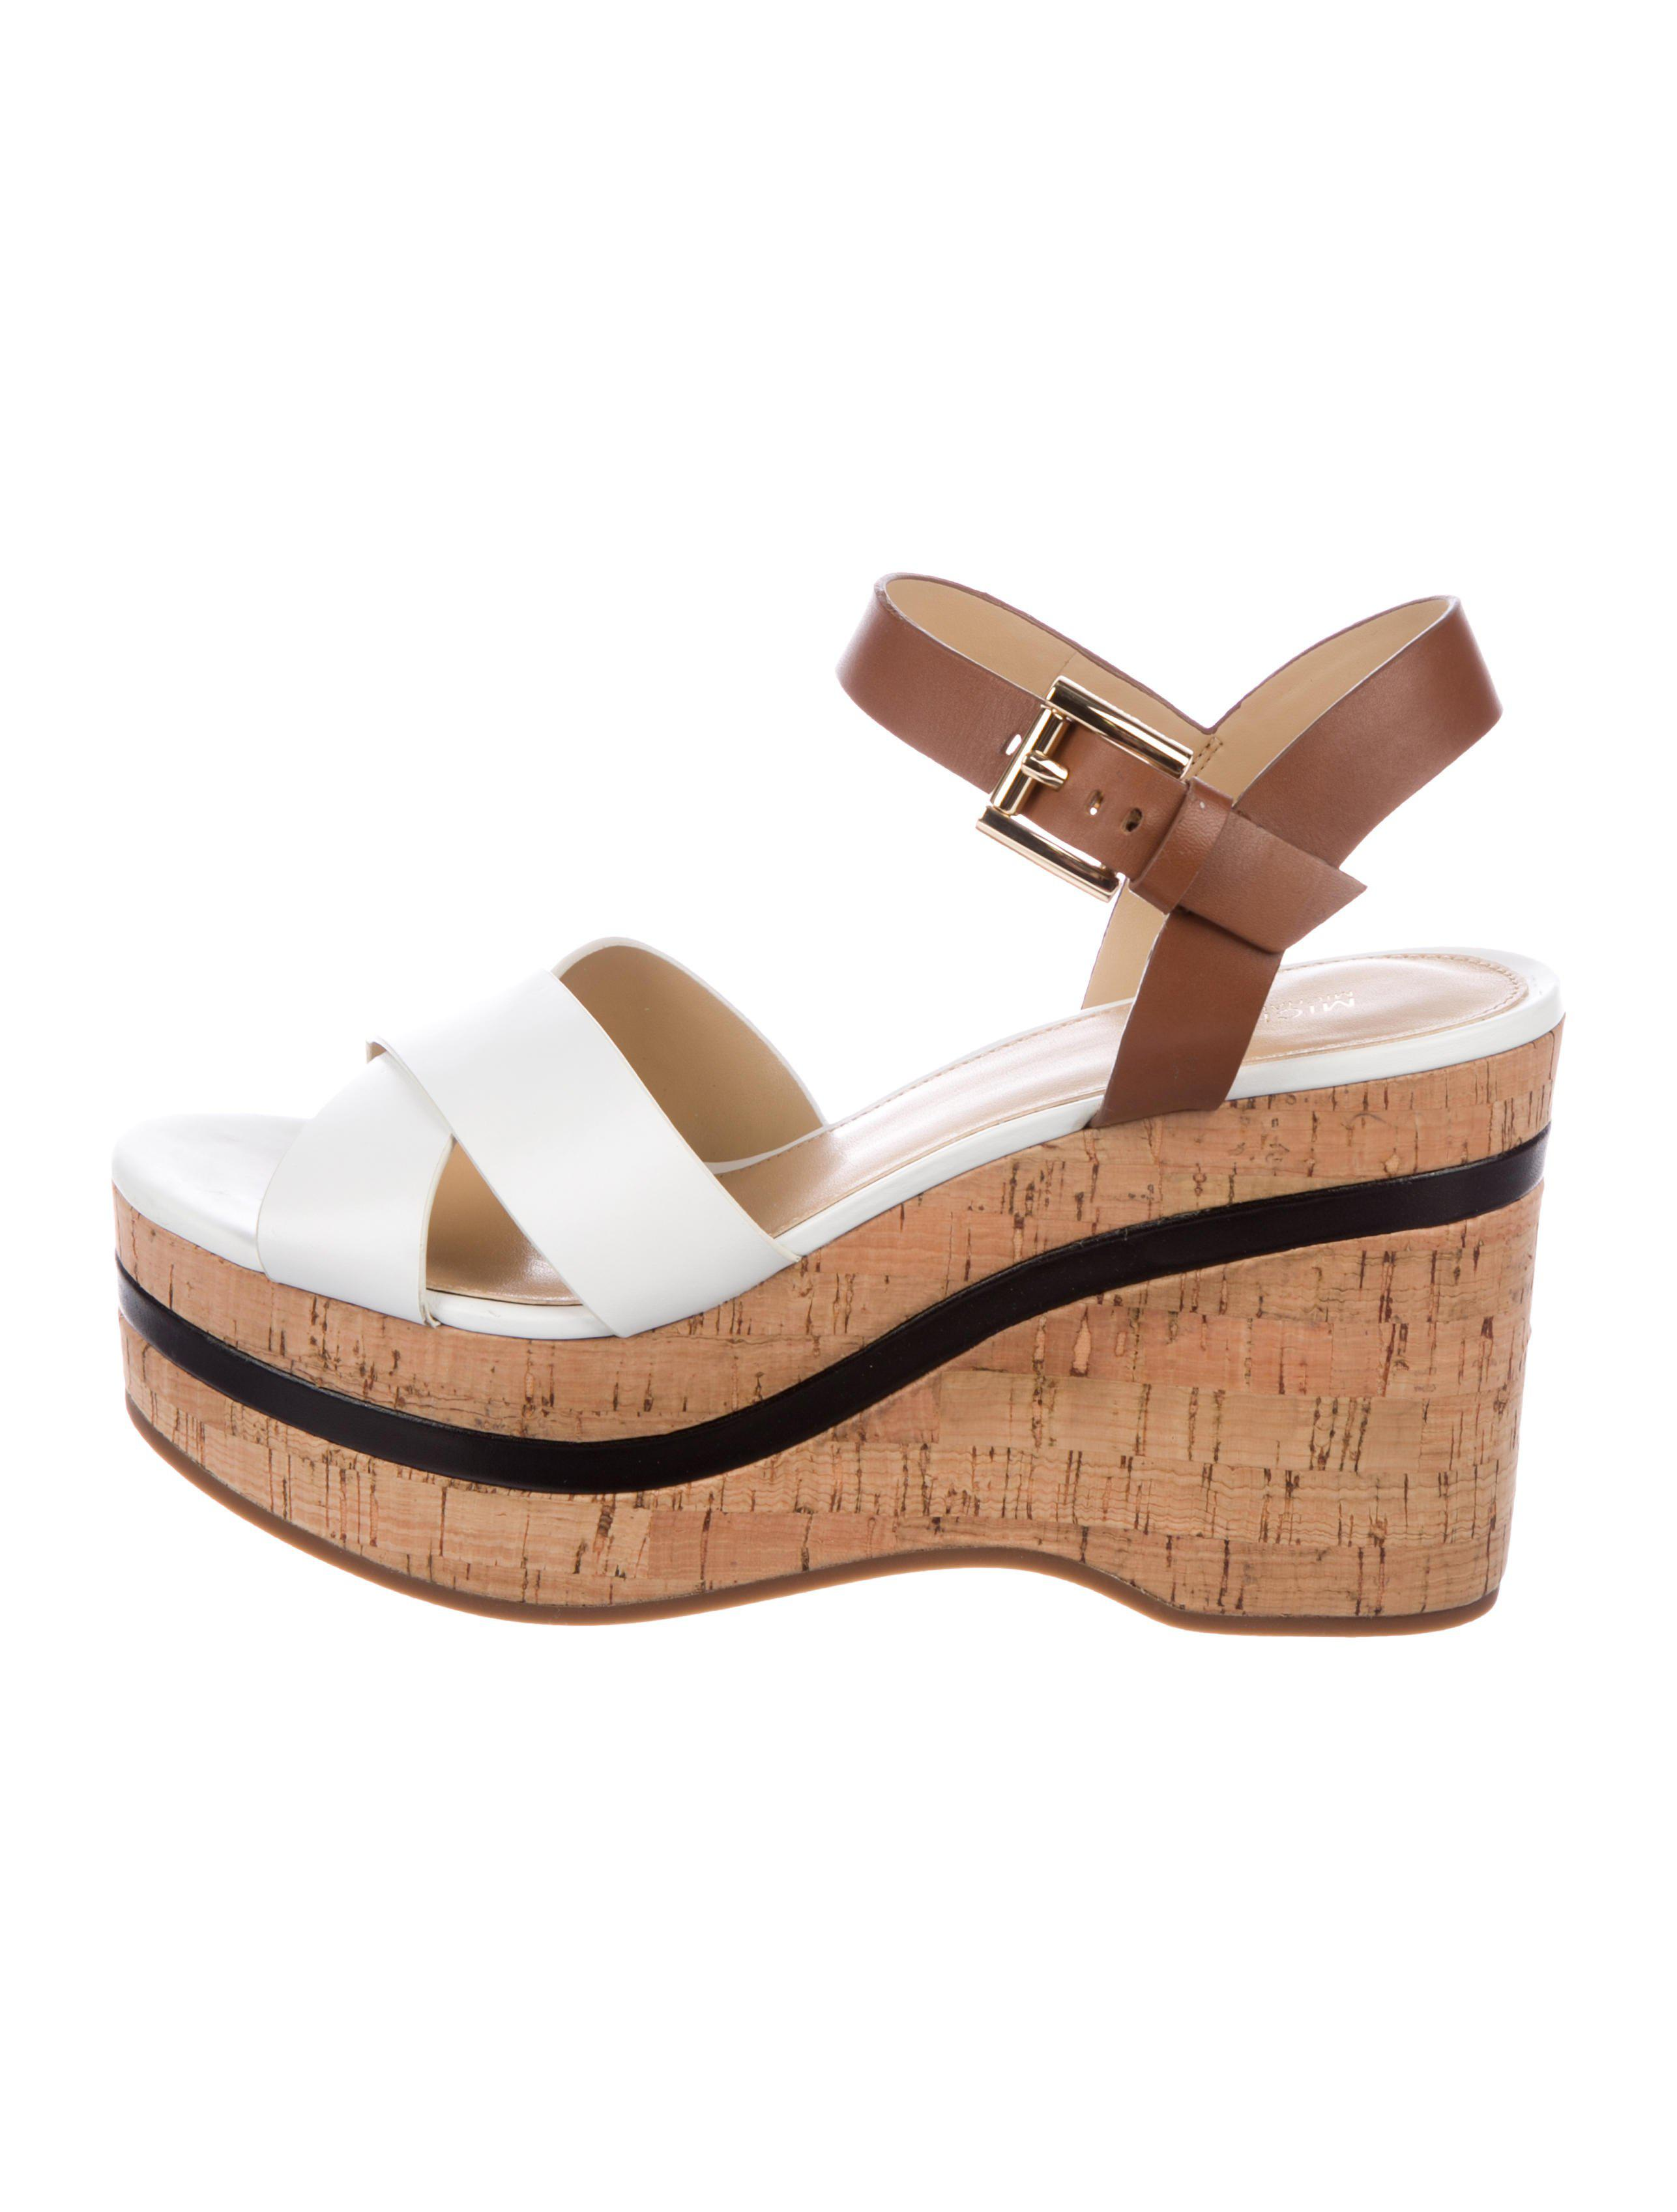 cc7d2d30f15 MICHAEL Michael Kors. Women s Natural Michael Kors Crossover Wedge Sandals  White